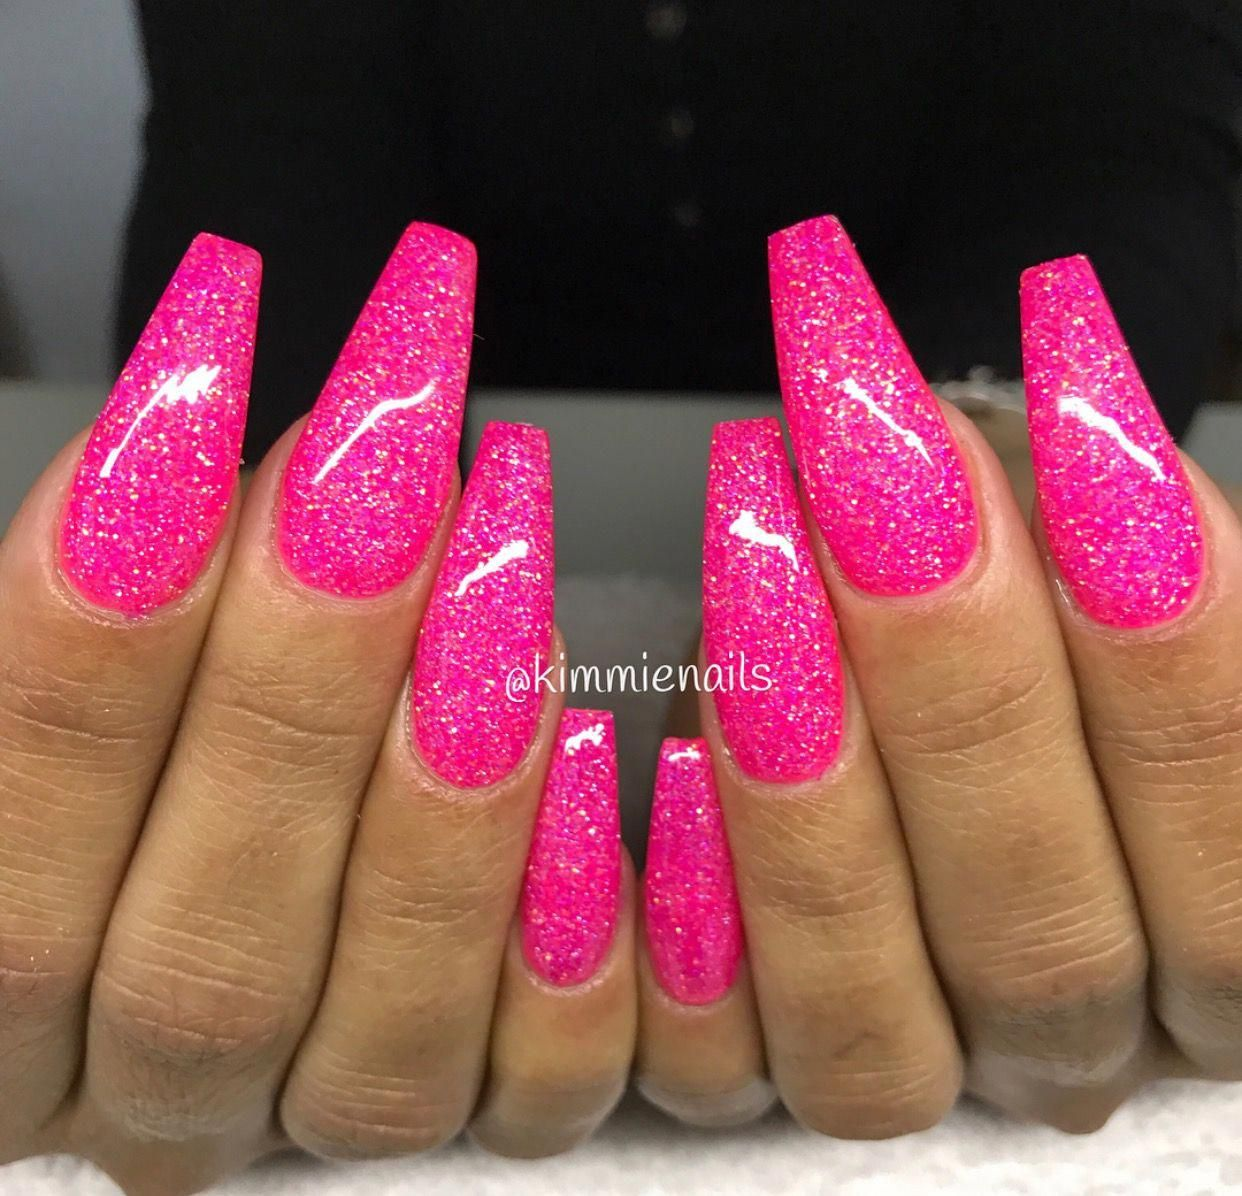 Kimmiesnails Book With Her And Follow Us Hair Nails And Style Pinknail Gelove Nehty Nehet Nehty